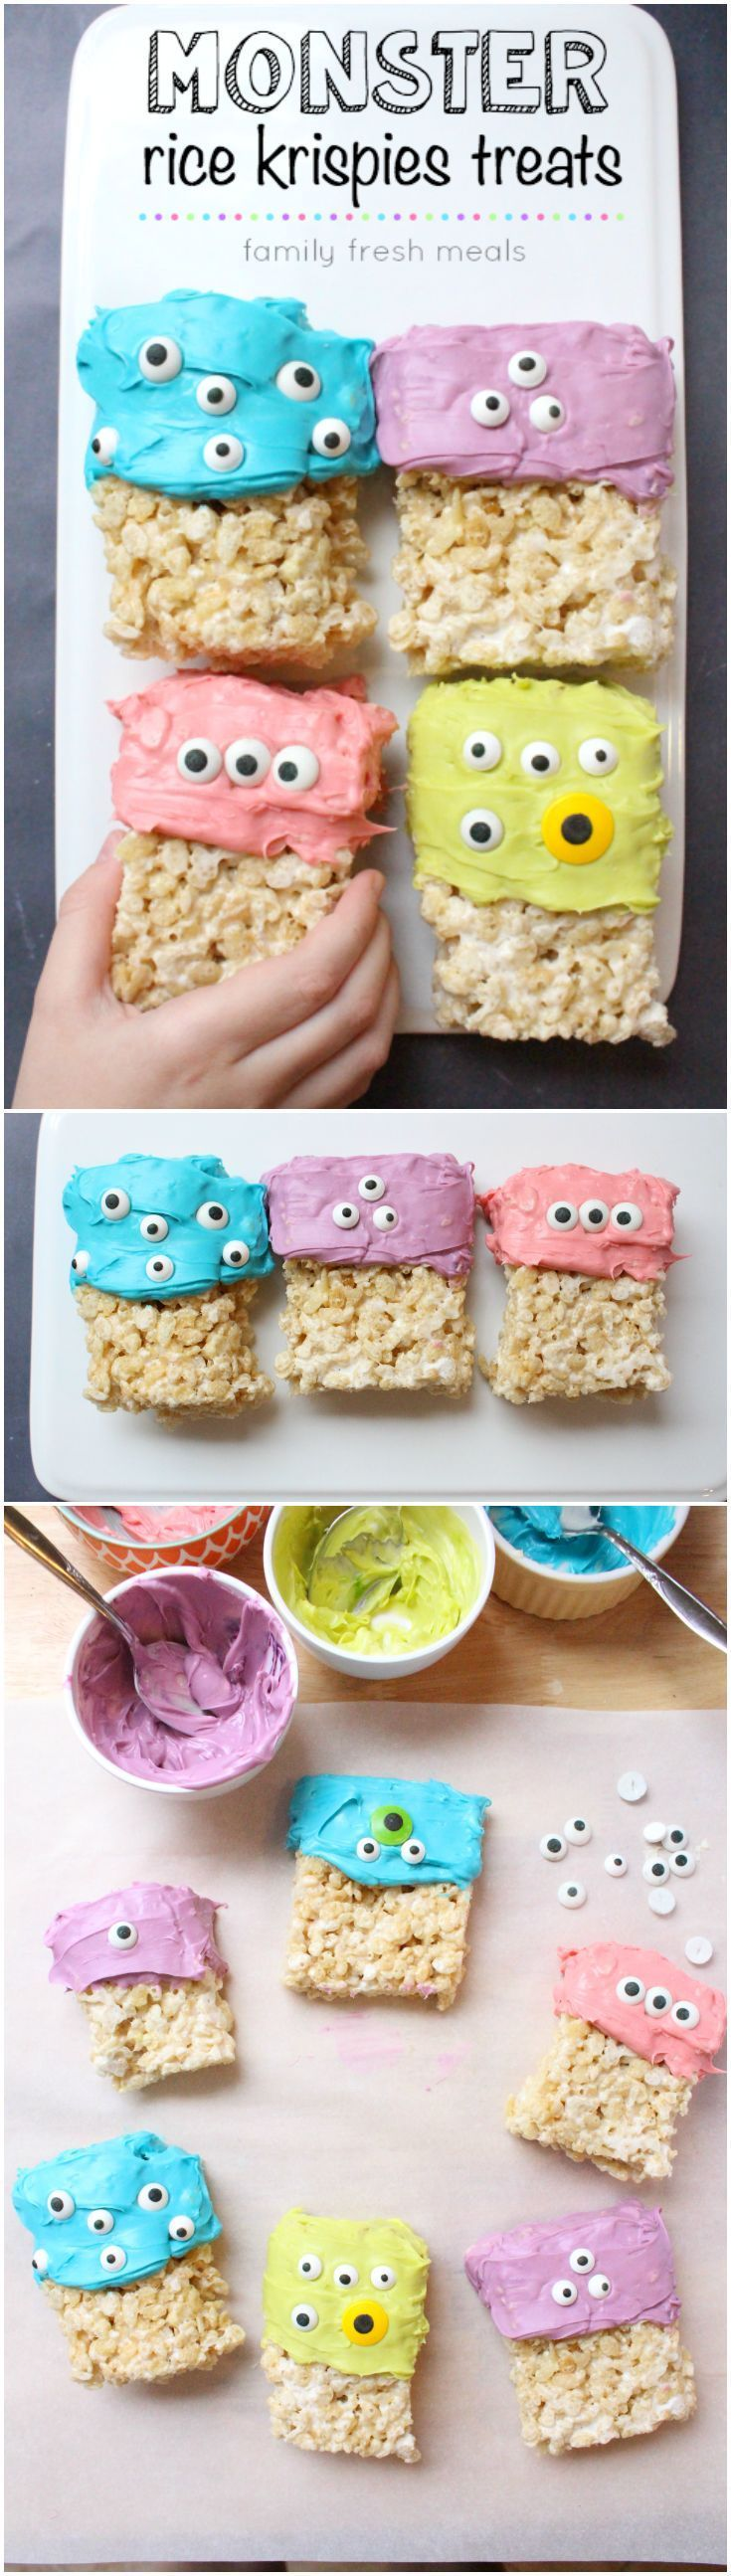 FUN HALLOWEEN FOOD! These easy Halloween treats are fun to make and eat! Easy Halloween Monster Rice Krispie Treats #familyfreshmeals #halloween